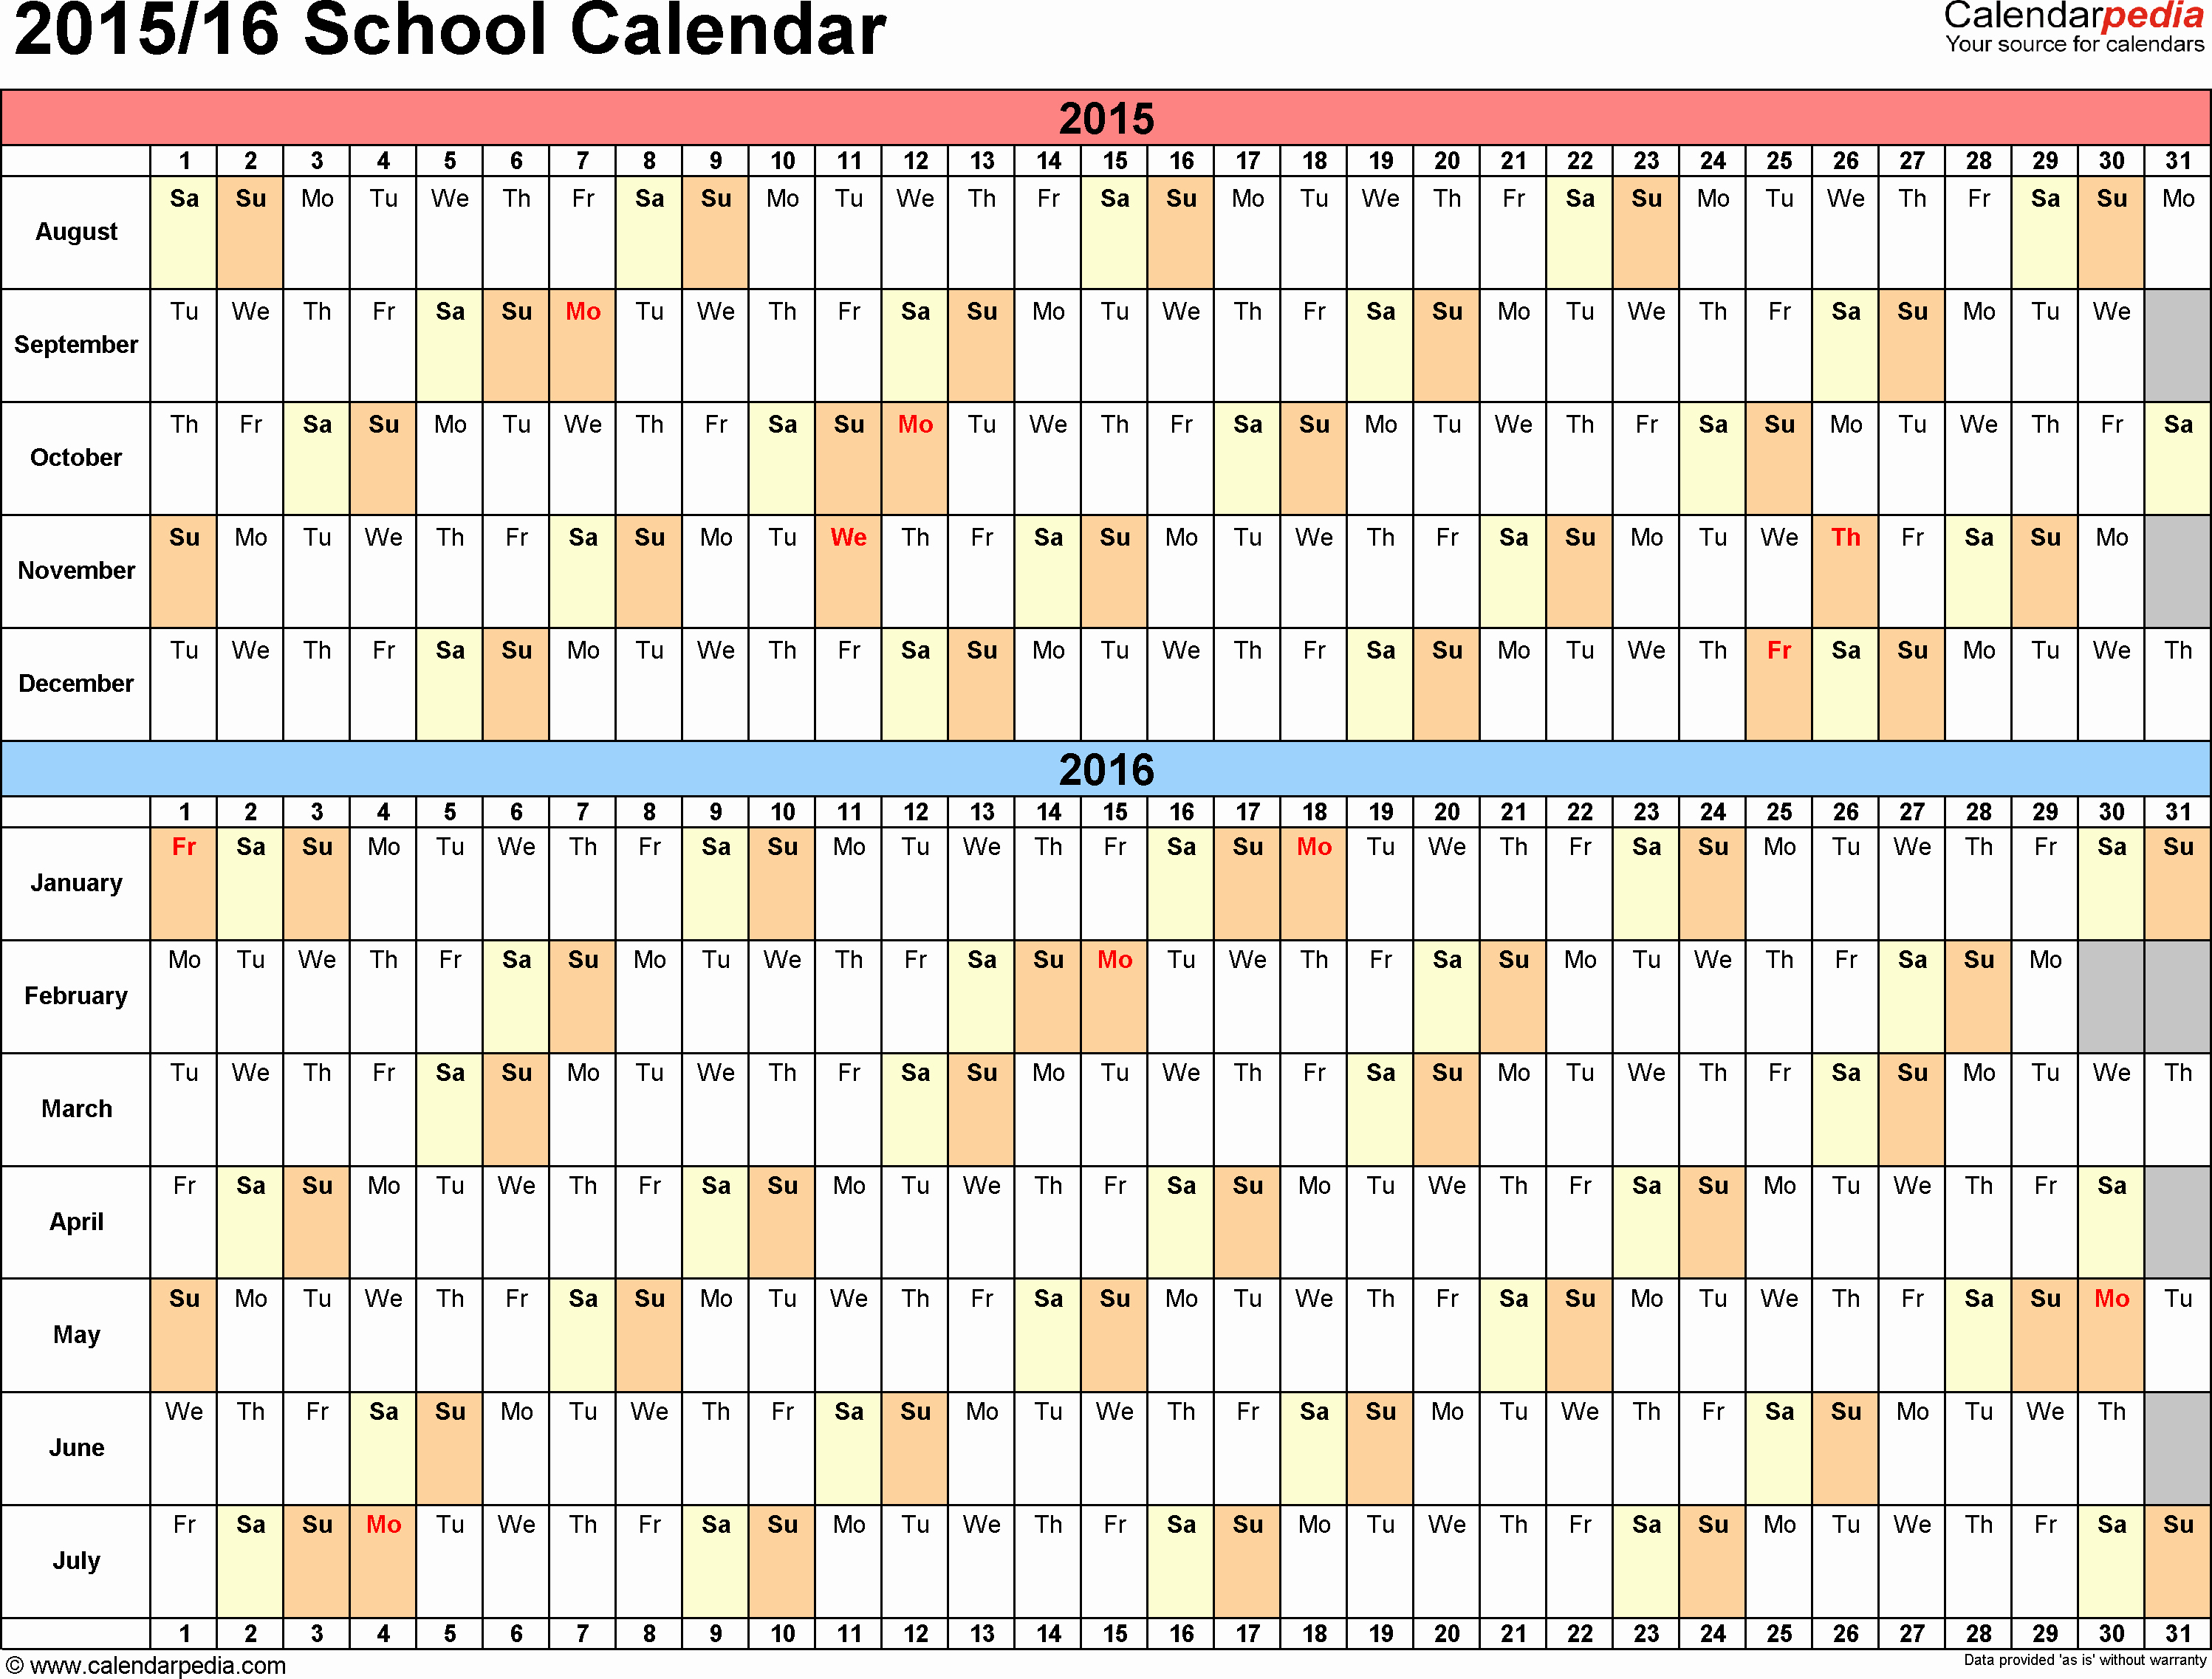 Monthly Calendar 2016-17 Fresh School Calendars 2015 2016 as Free Printable Excel Templates